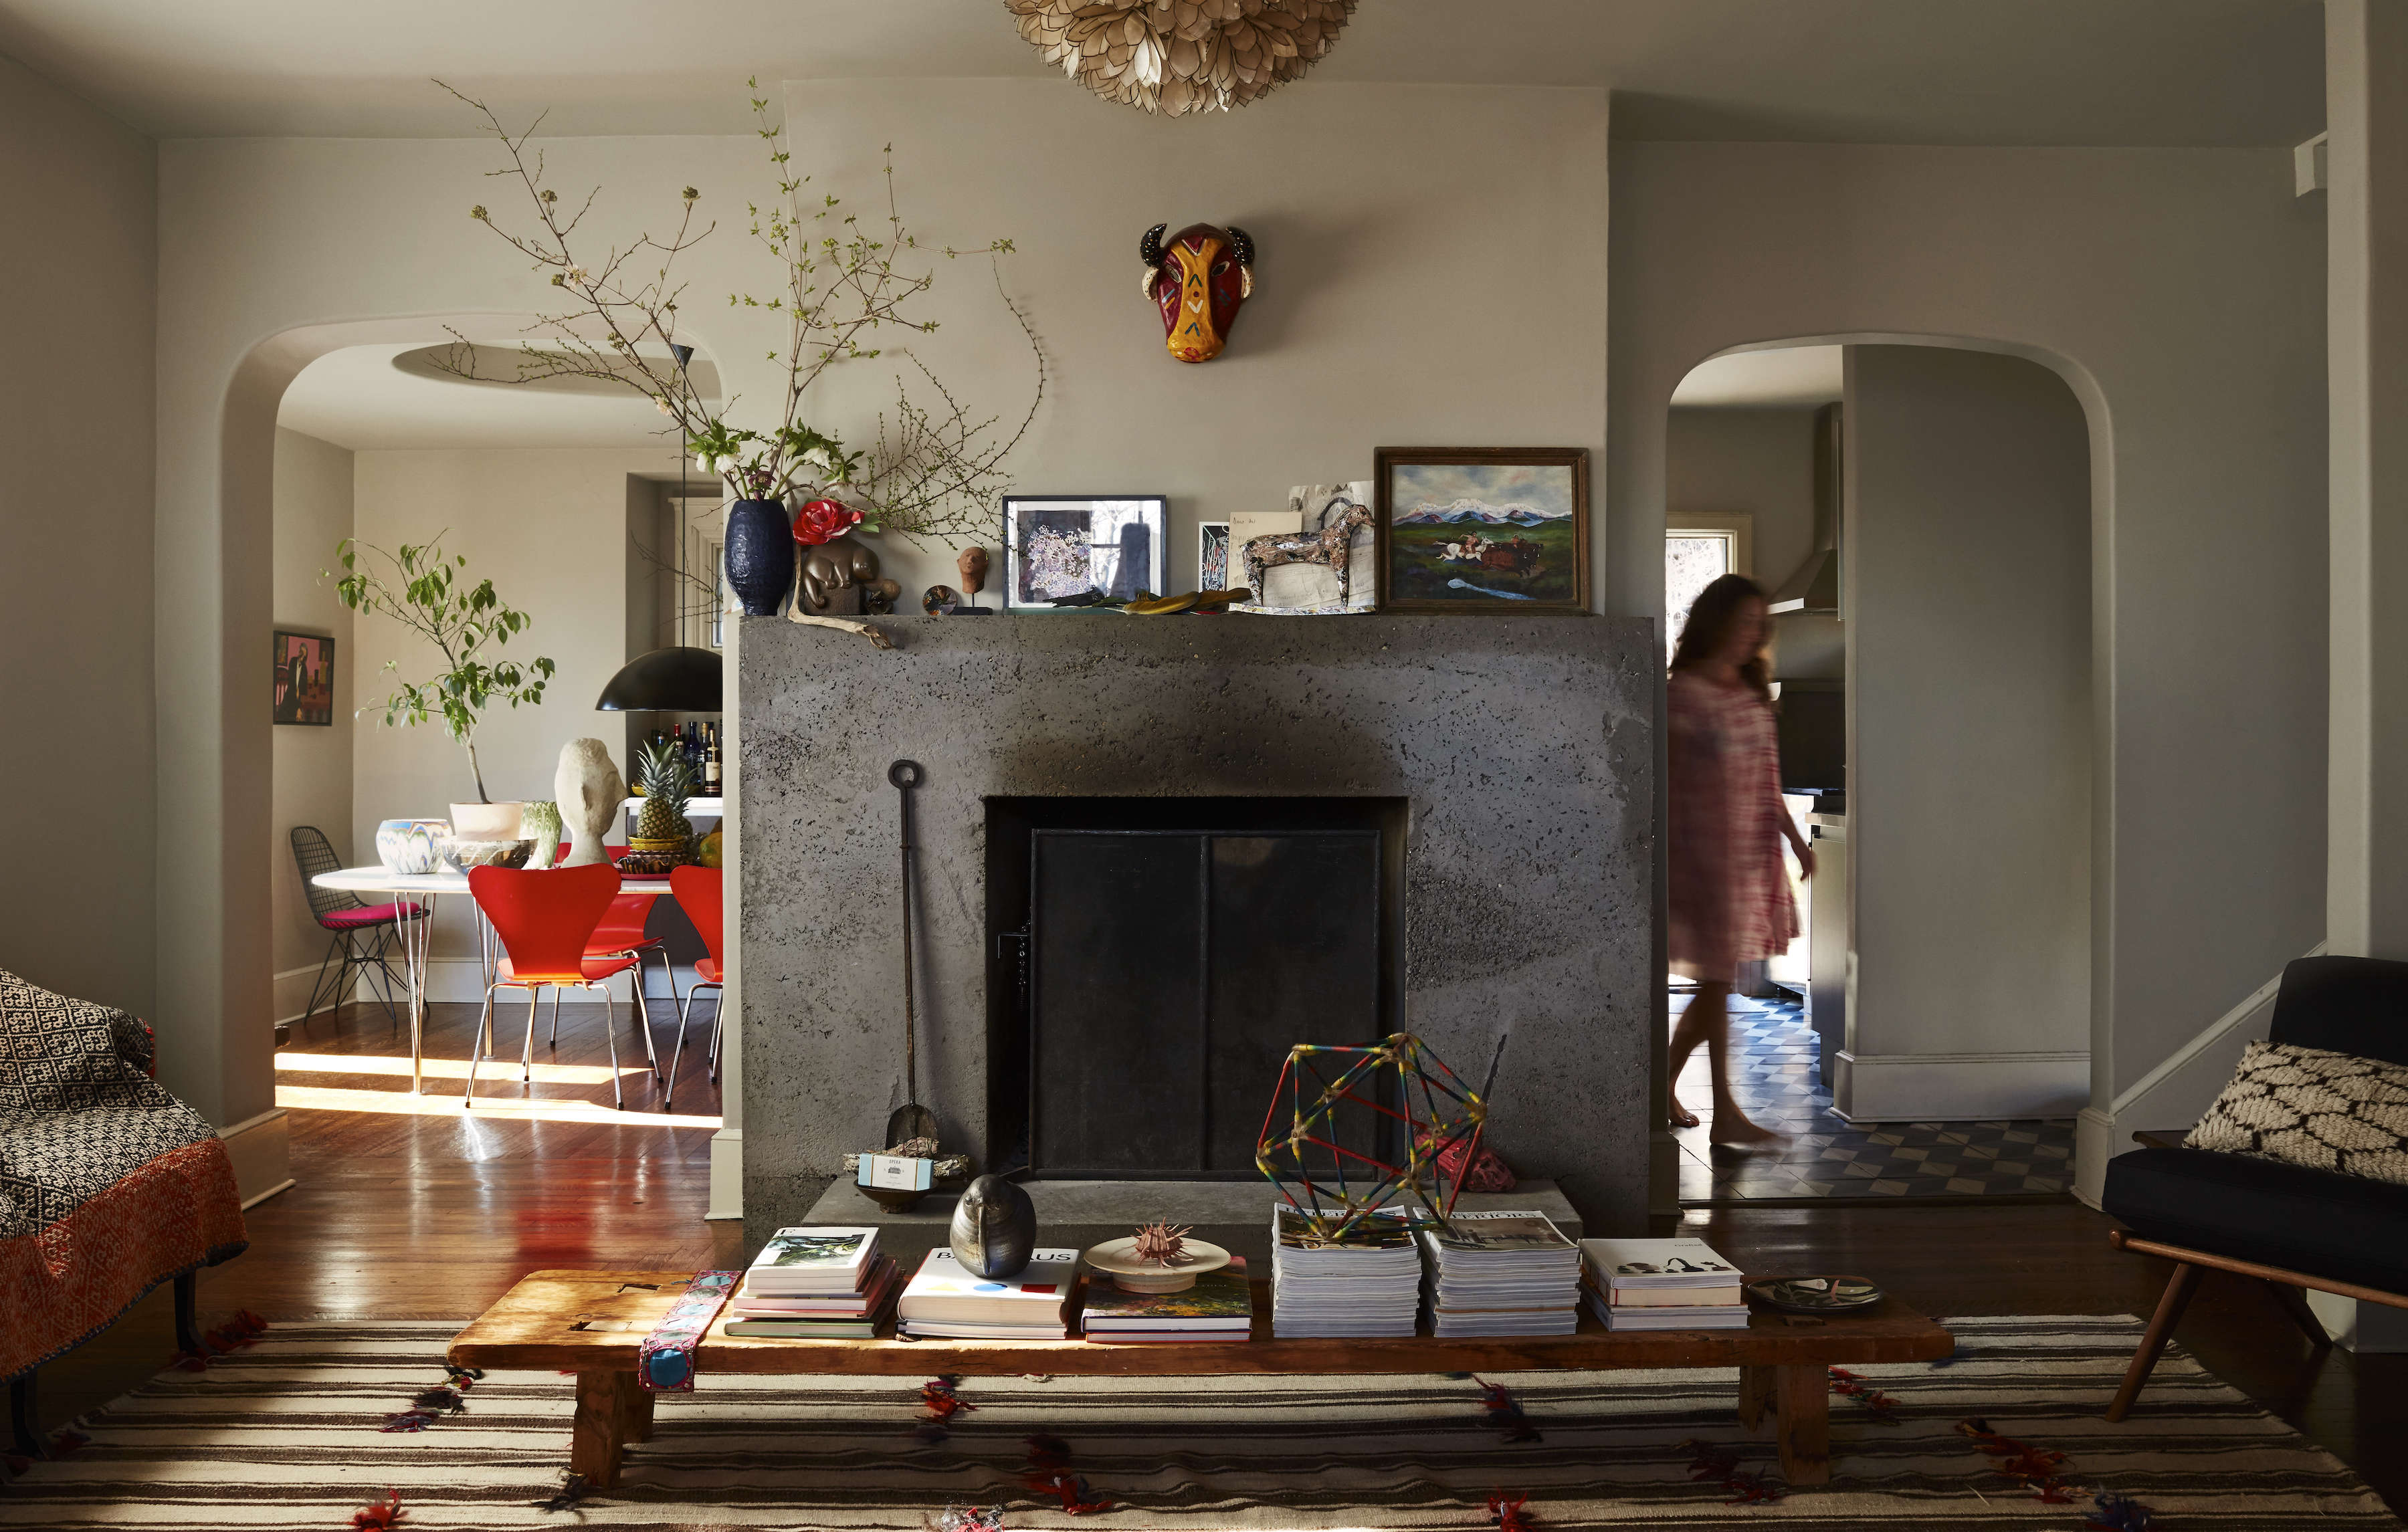 livia lives in a funky \190\1 spanish mediterranean house in riverdale, in the  9